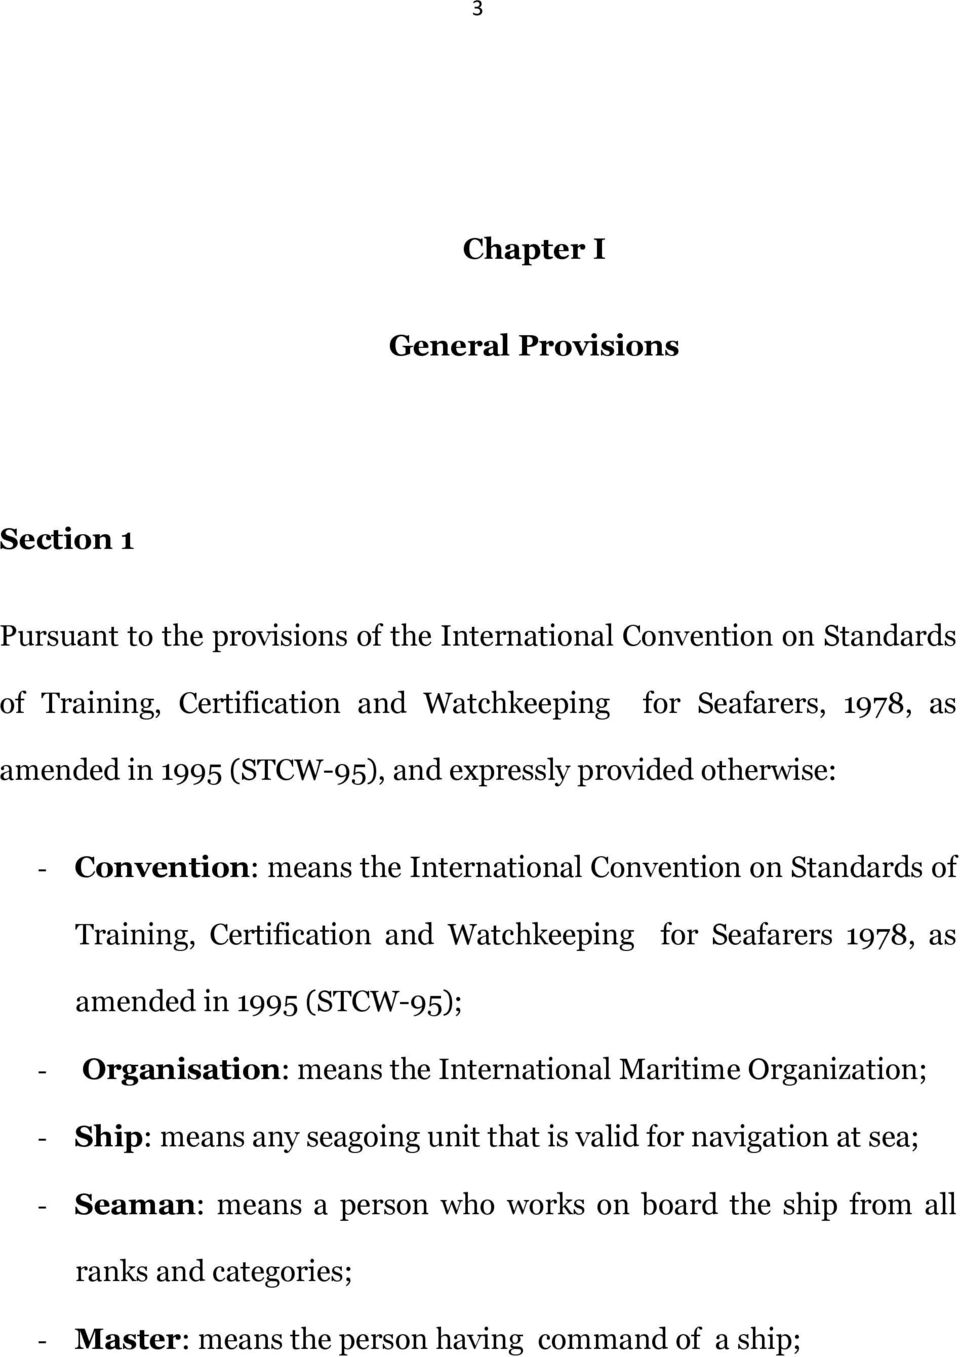 Certification and Watchkeeping for Seafarers 1978, as amended in 1995 (STCW-95); - Organisation: means the International Maritime Organization; - Ship: means any